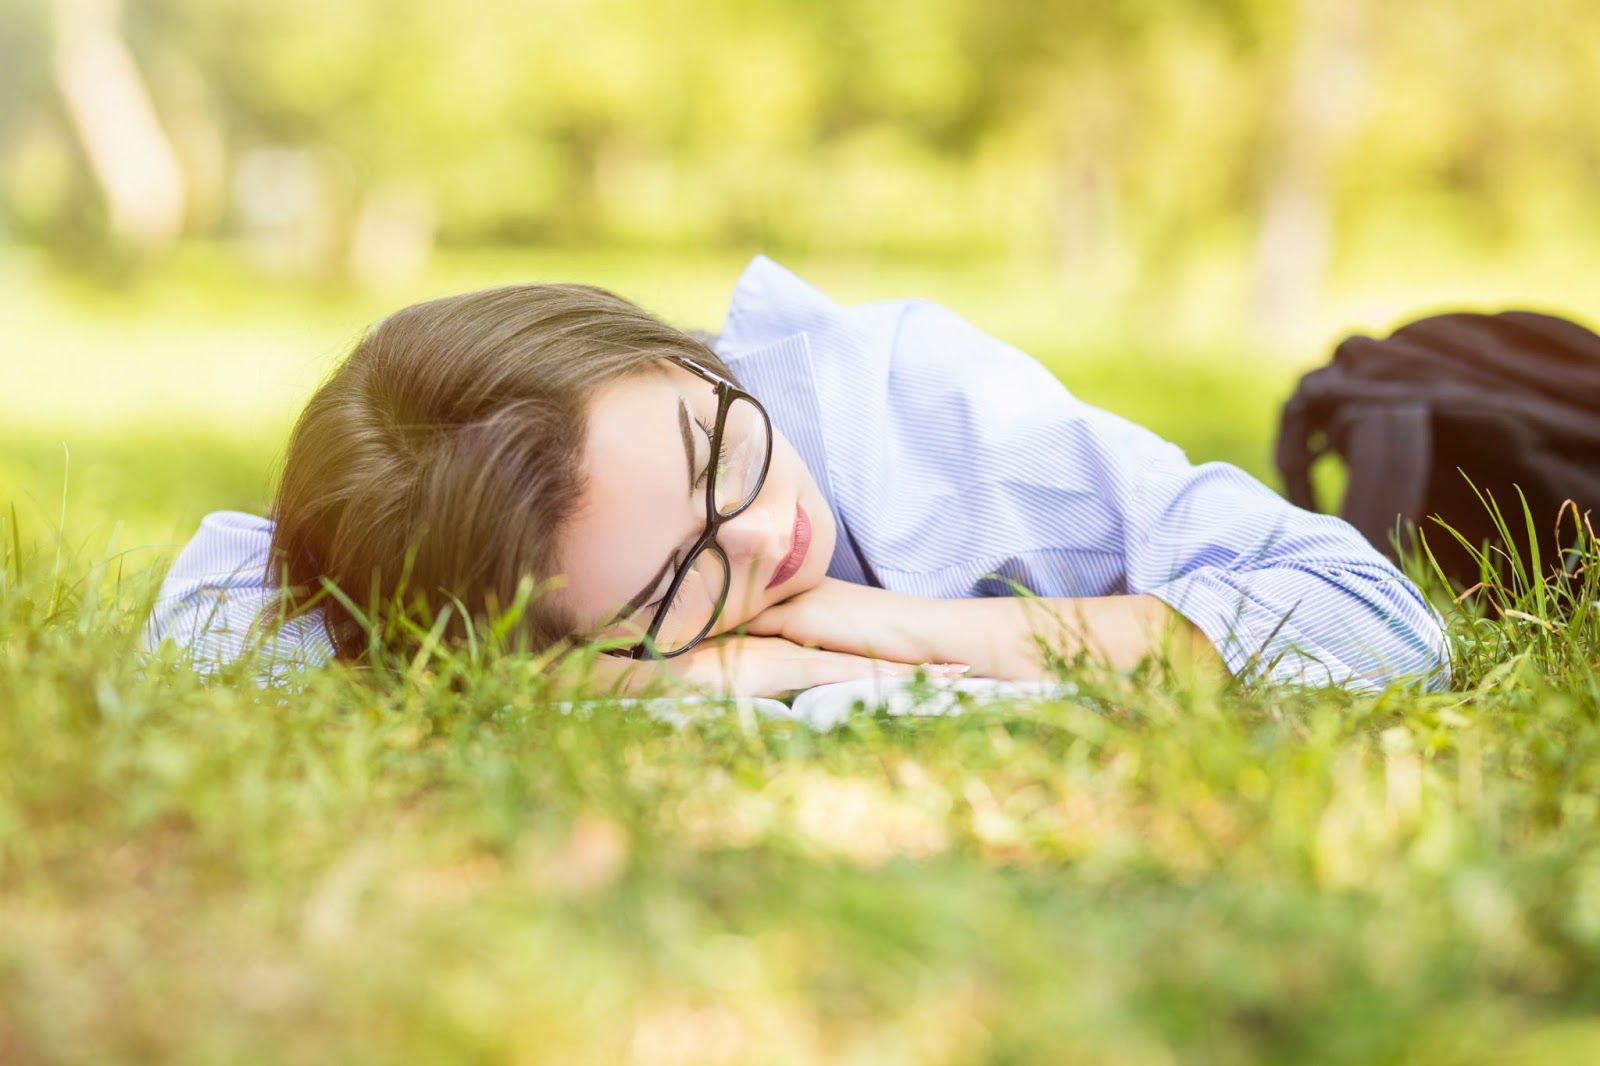 A woman naps outside in the grass